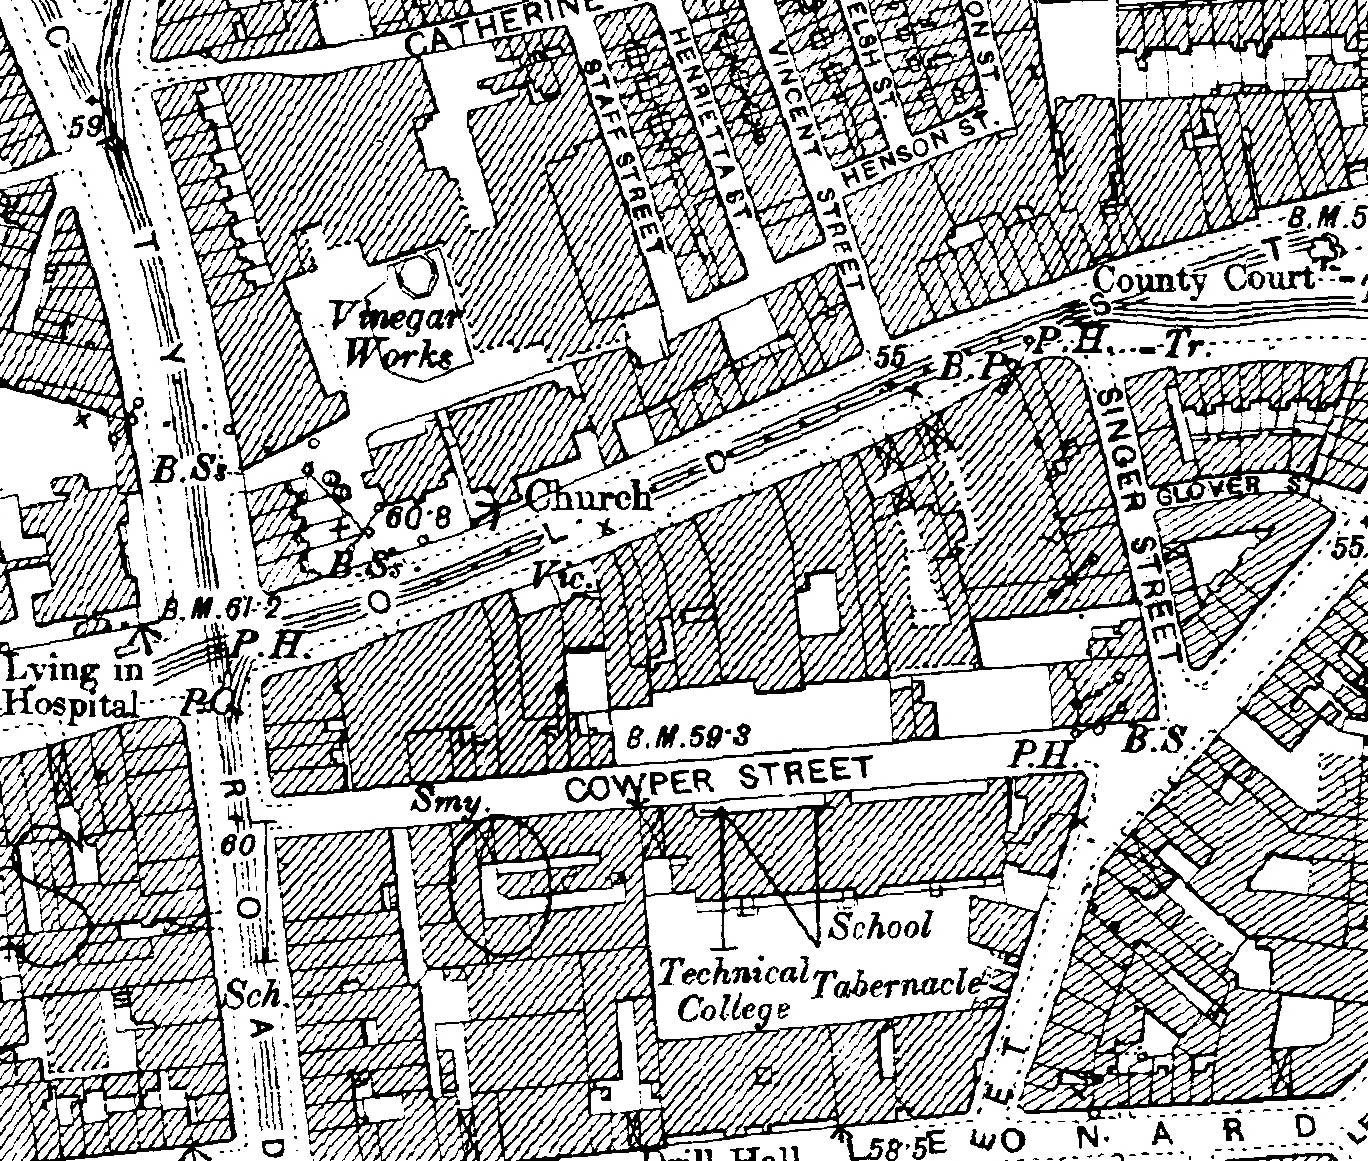 Old Street London Map.Damage To Cowper Street And Old Street Off City Road London